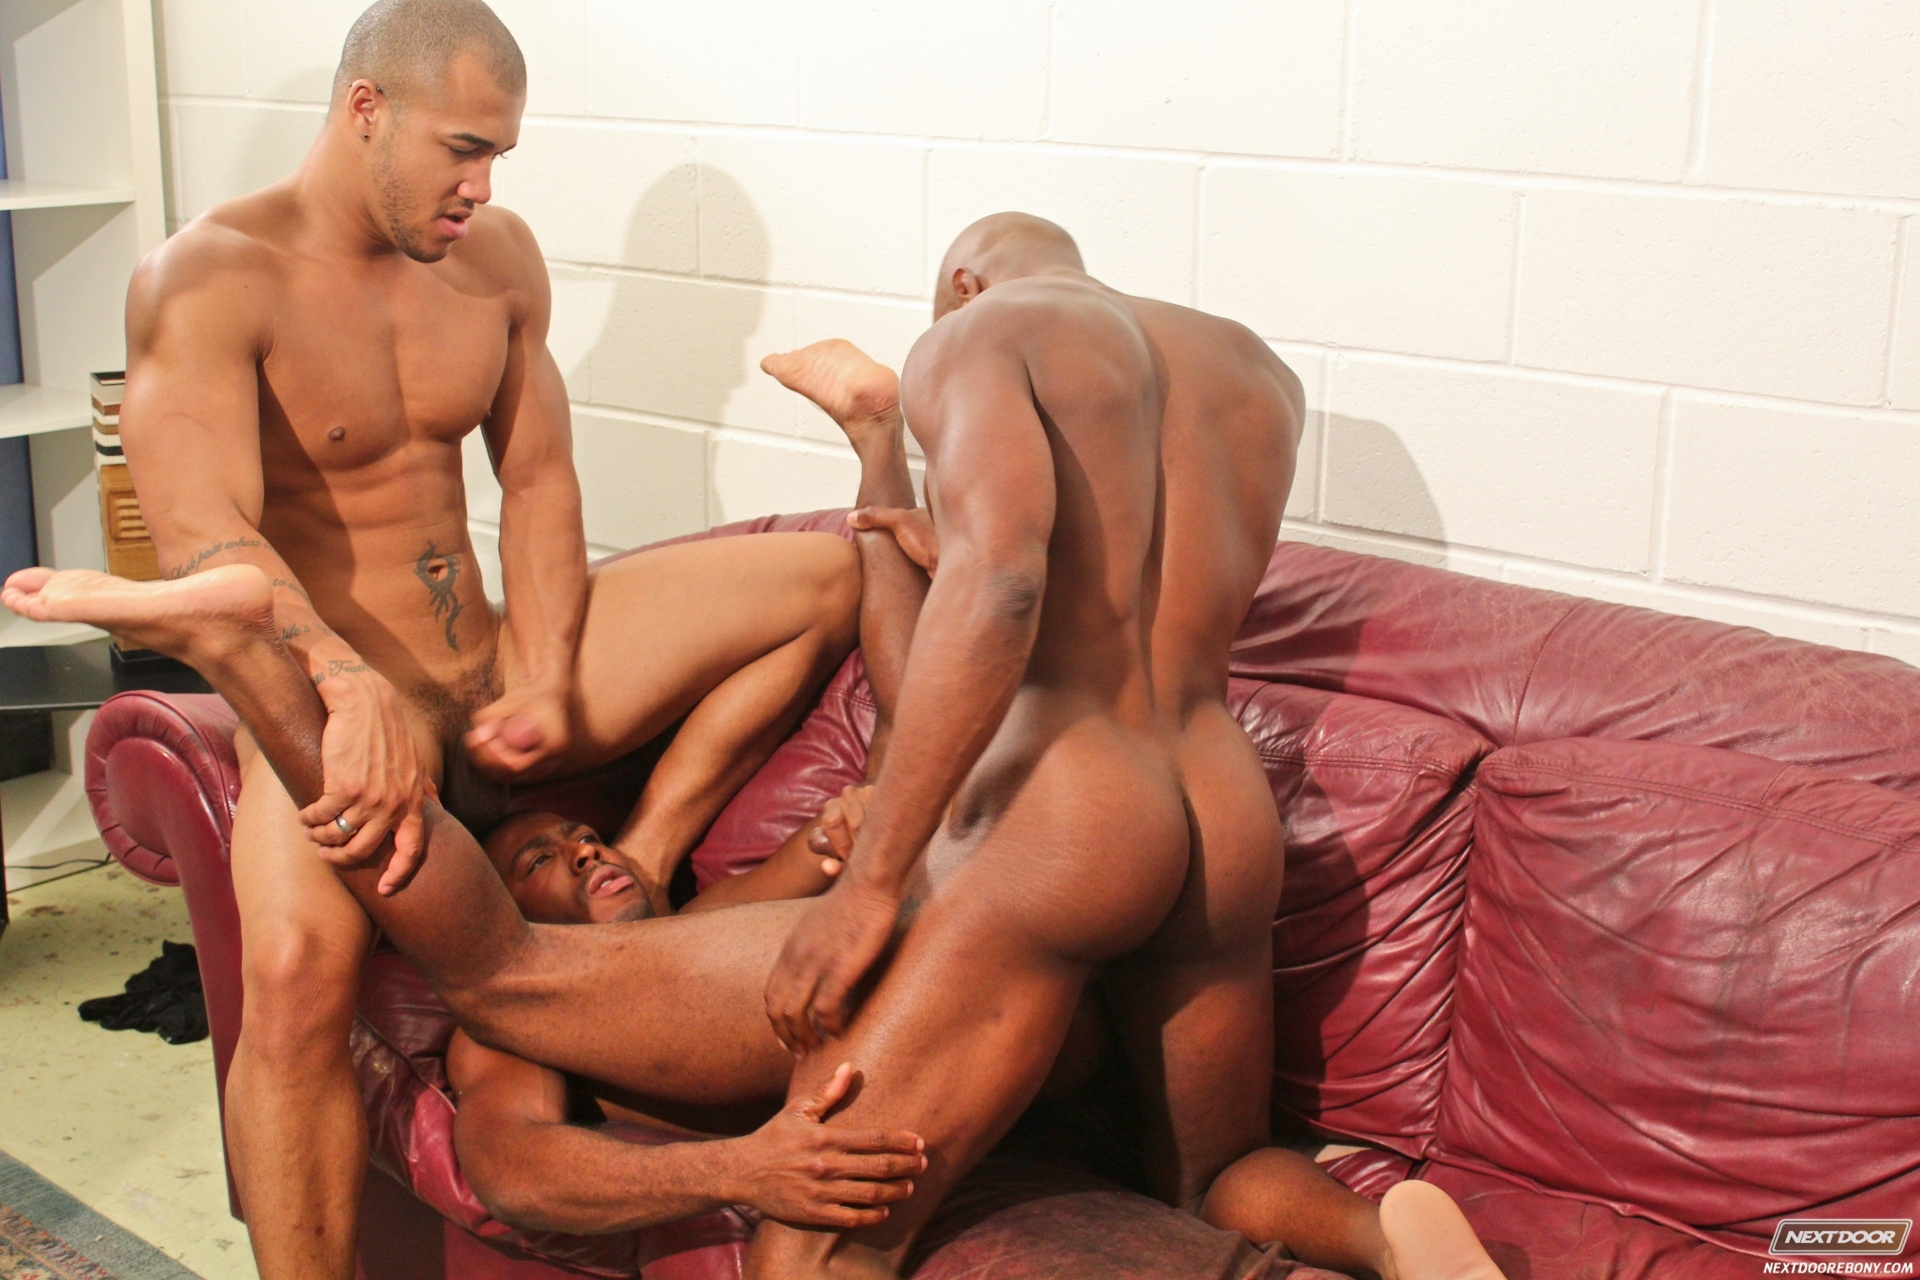 Gay - 15298 videos - Tasty Blacks Free Ebony Black Sex